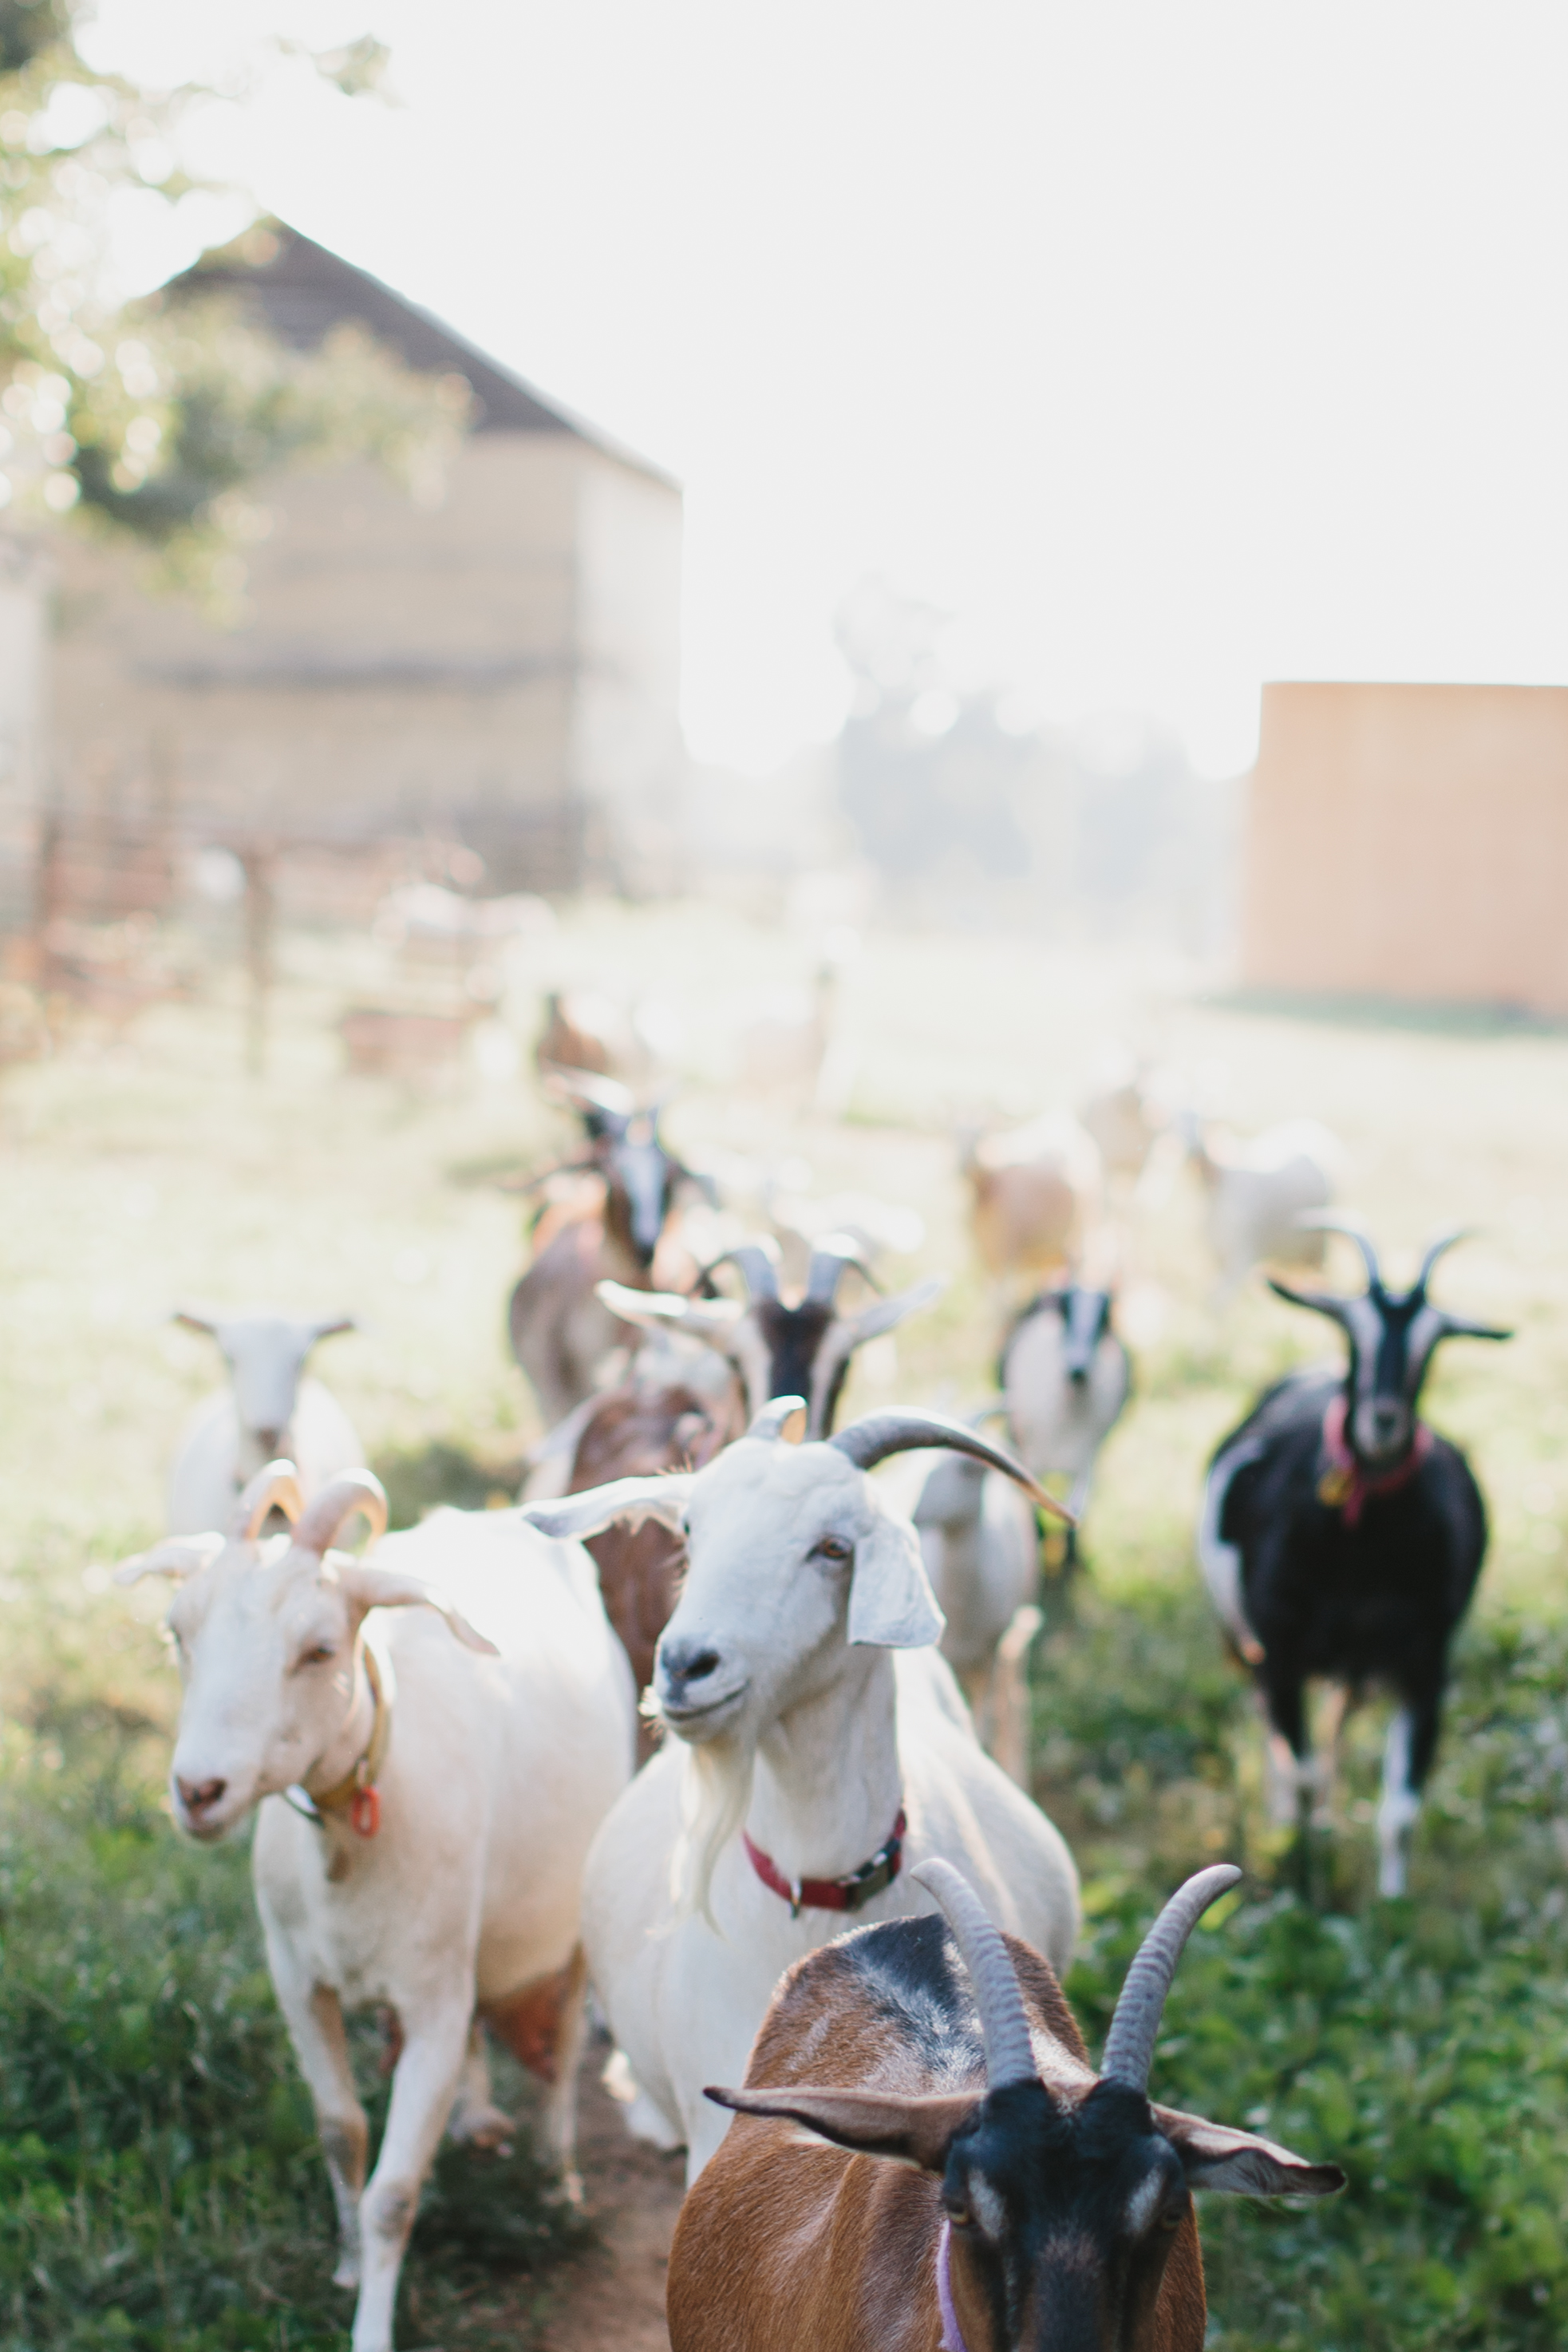 Elodie Farms' goats in Rougemont, NC | lifestyle photographer | Merritt Chesson Photography